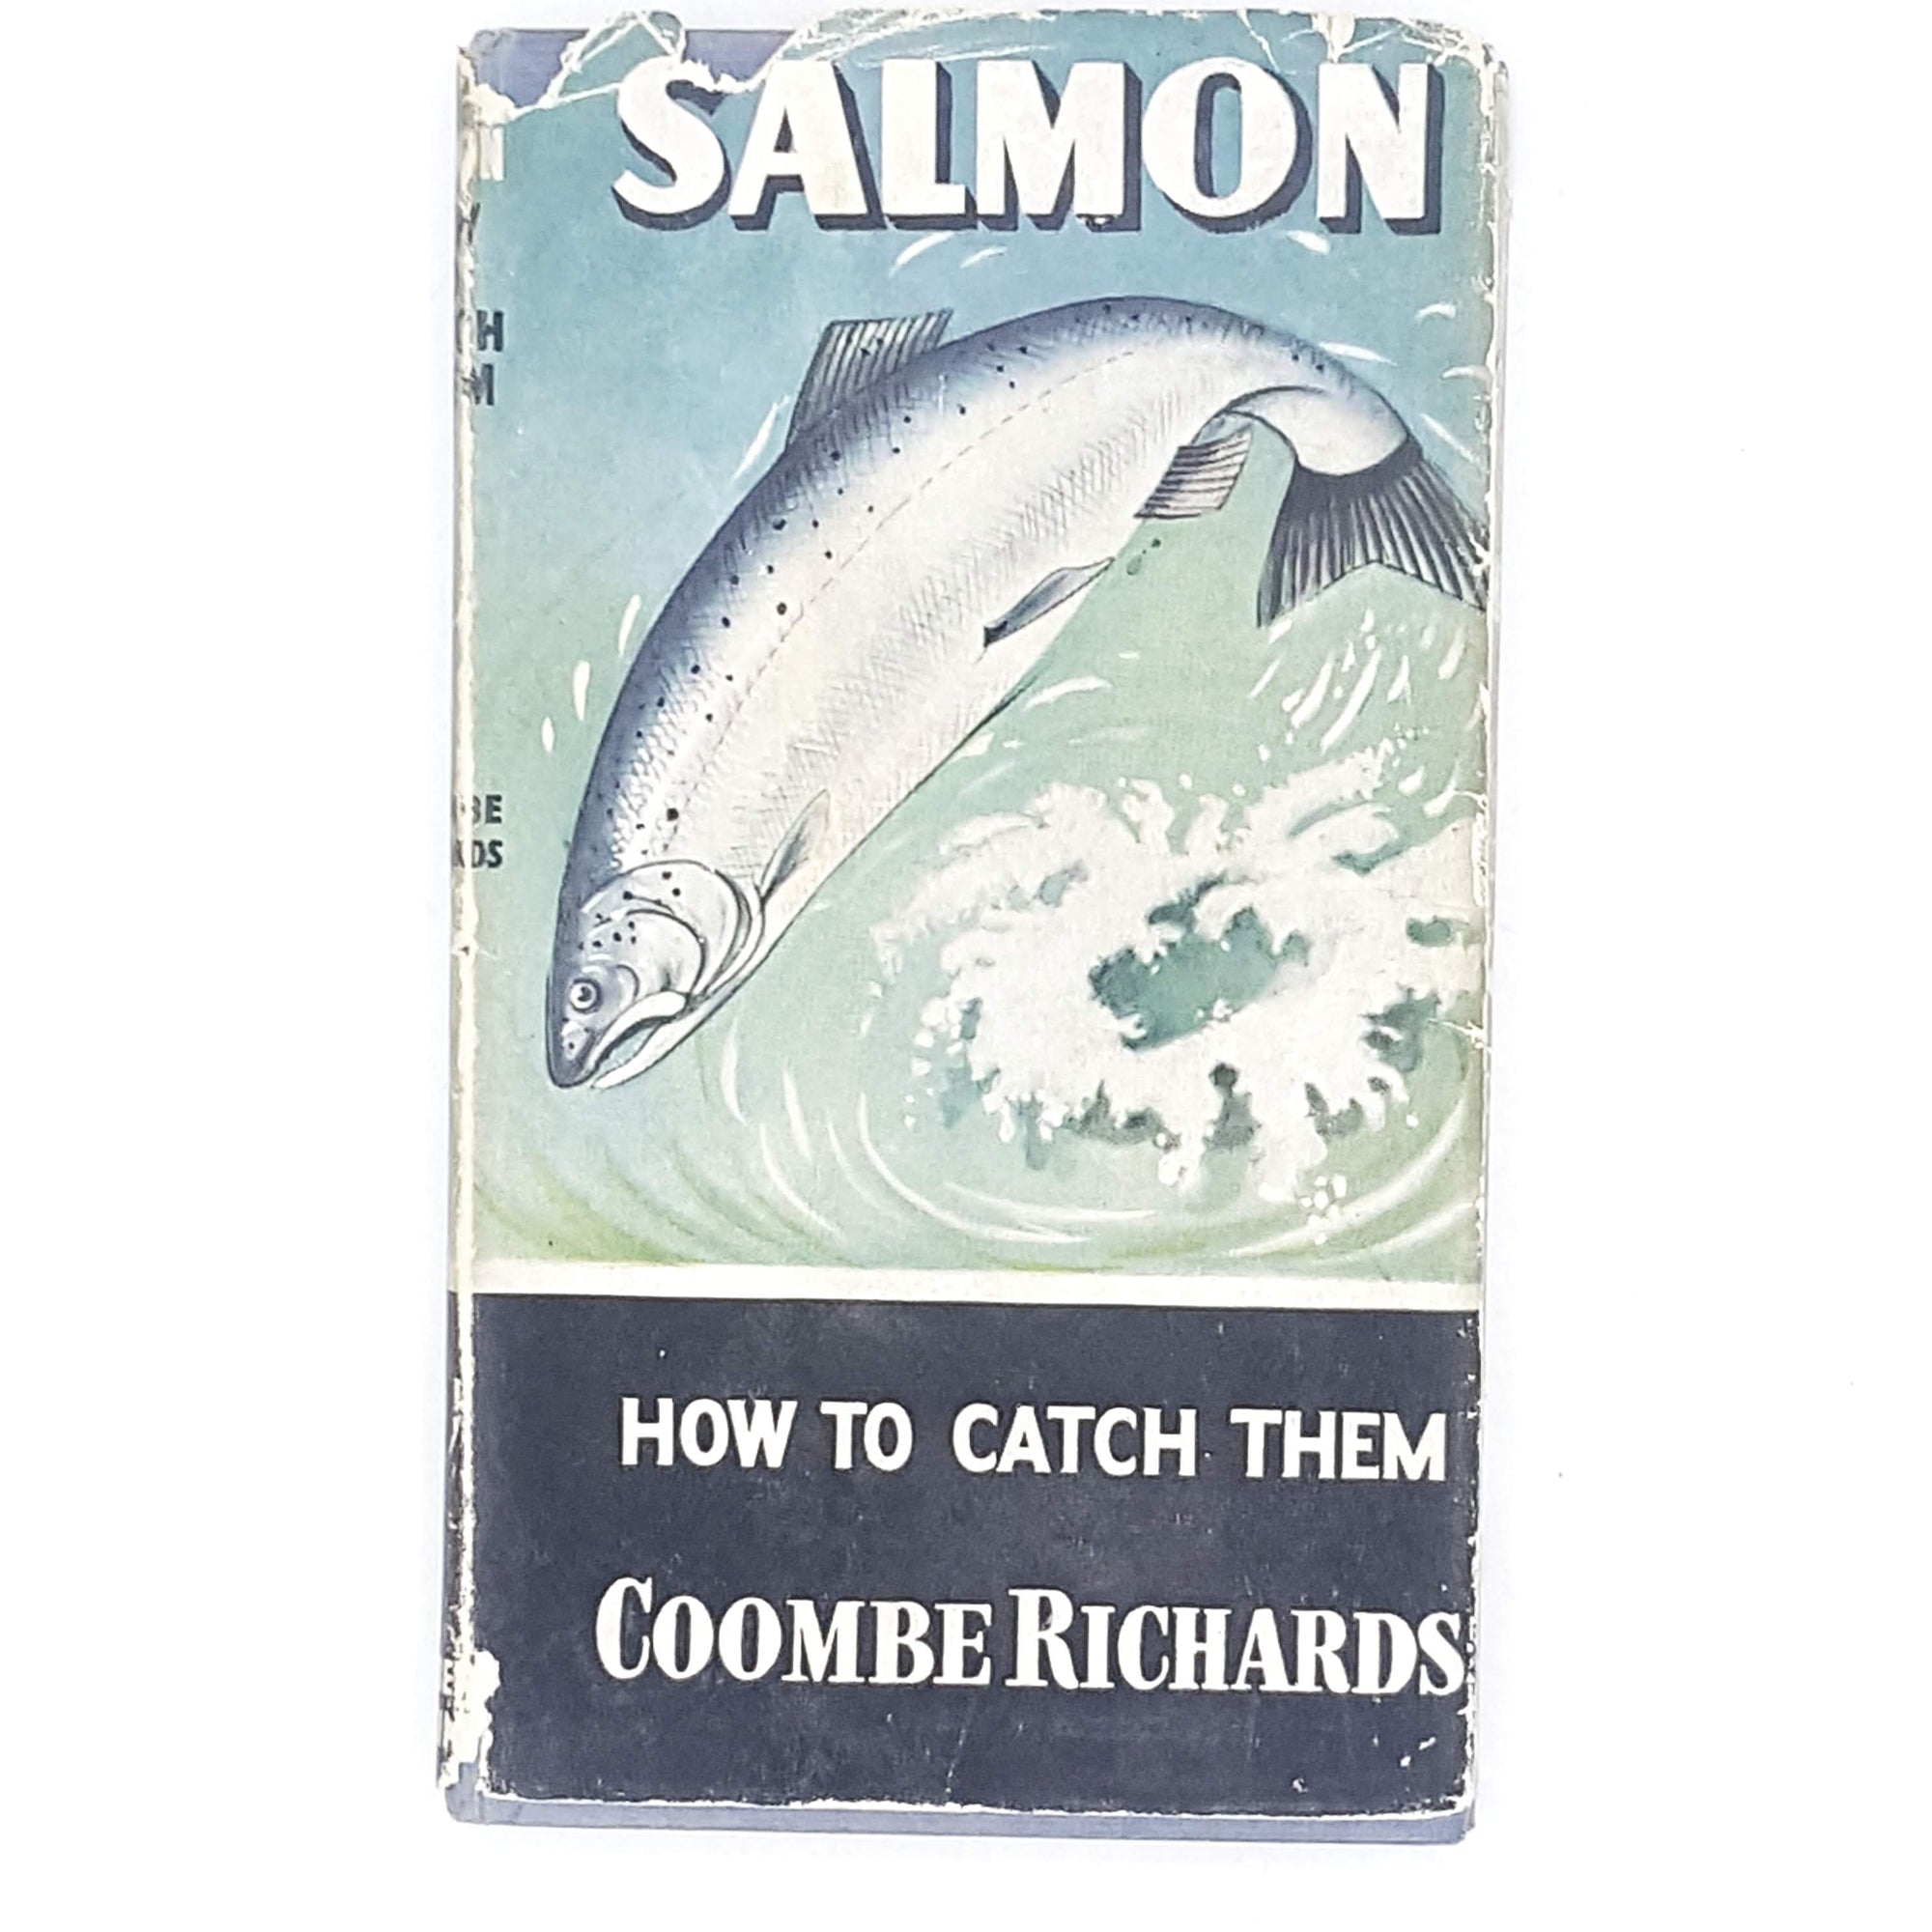 Illustrated Salmon: How to Catch Them 1959